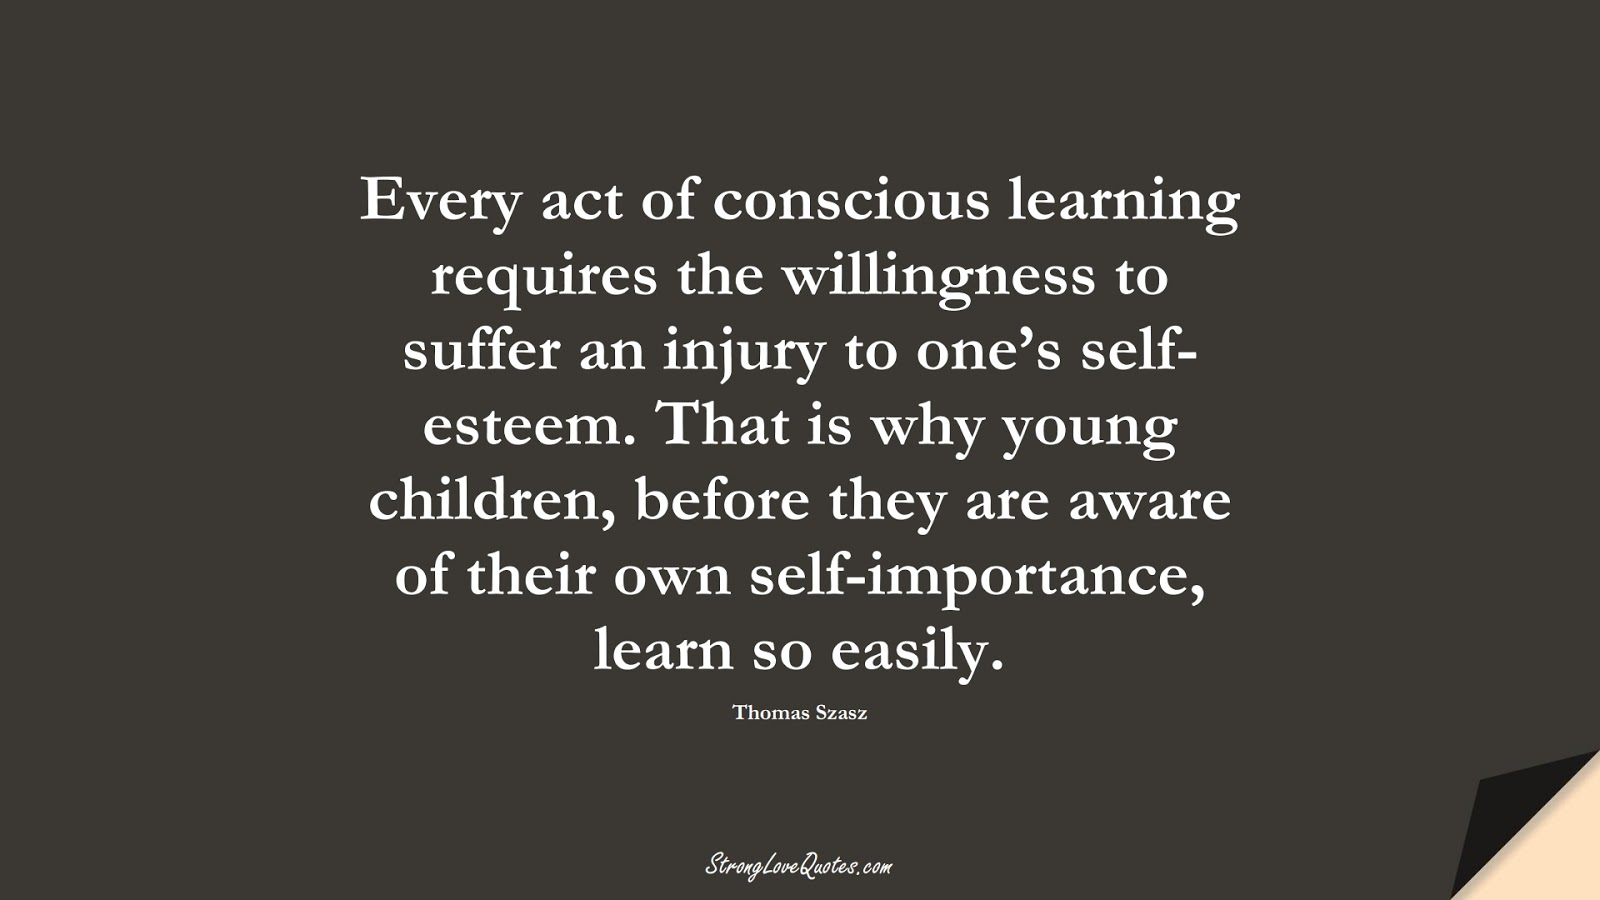 Every act of conscious learning requires the willingness to suffer an injury to one's self-esteem. That is why young children, before they are aware of their own self-importance, learn so easily. (Thomas Szasz);  #EducationQuotes